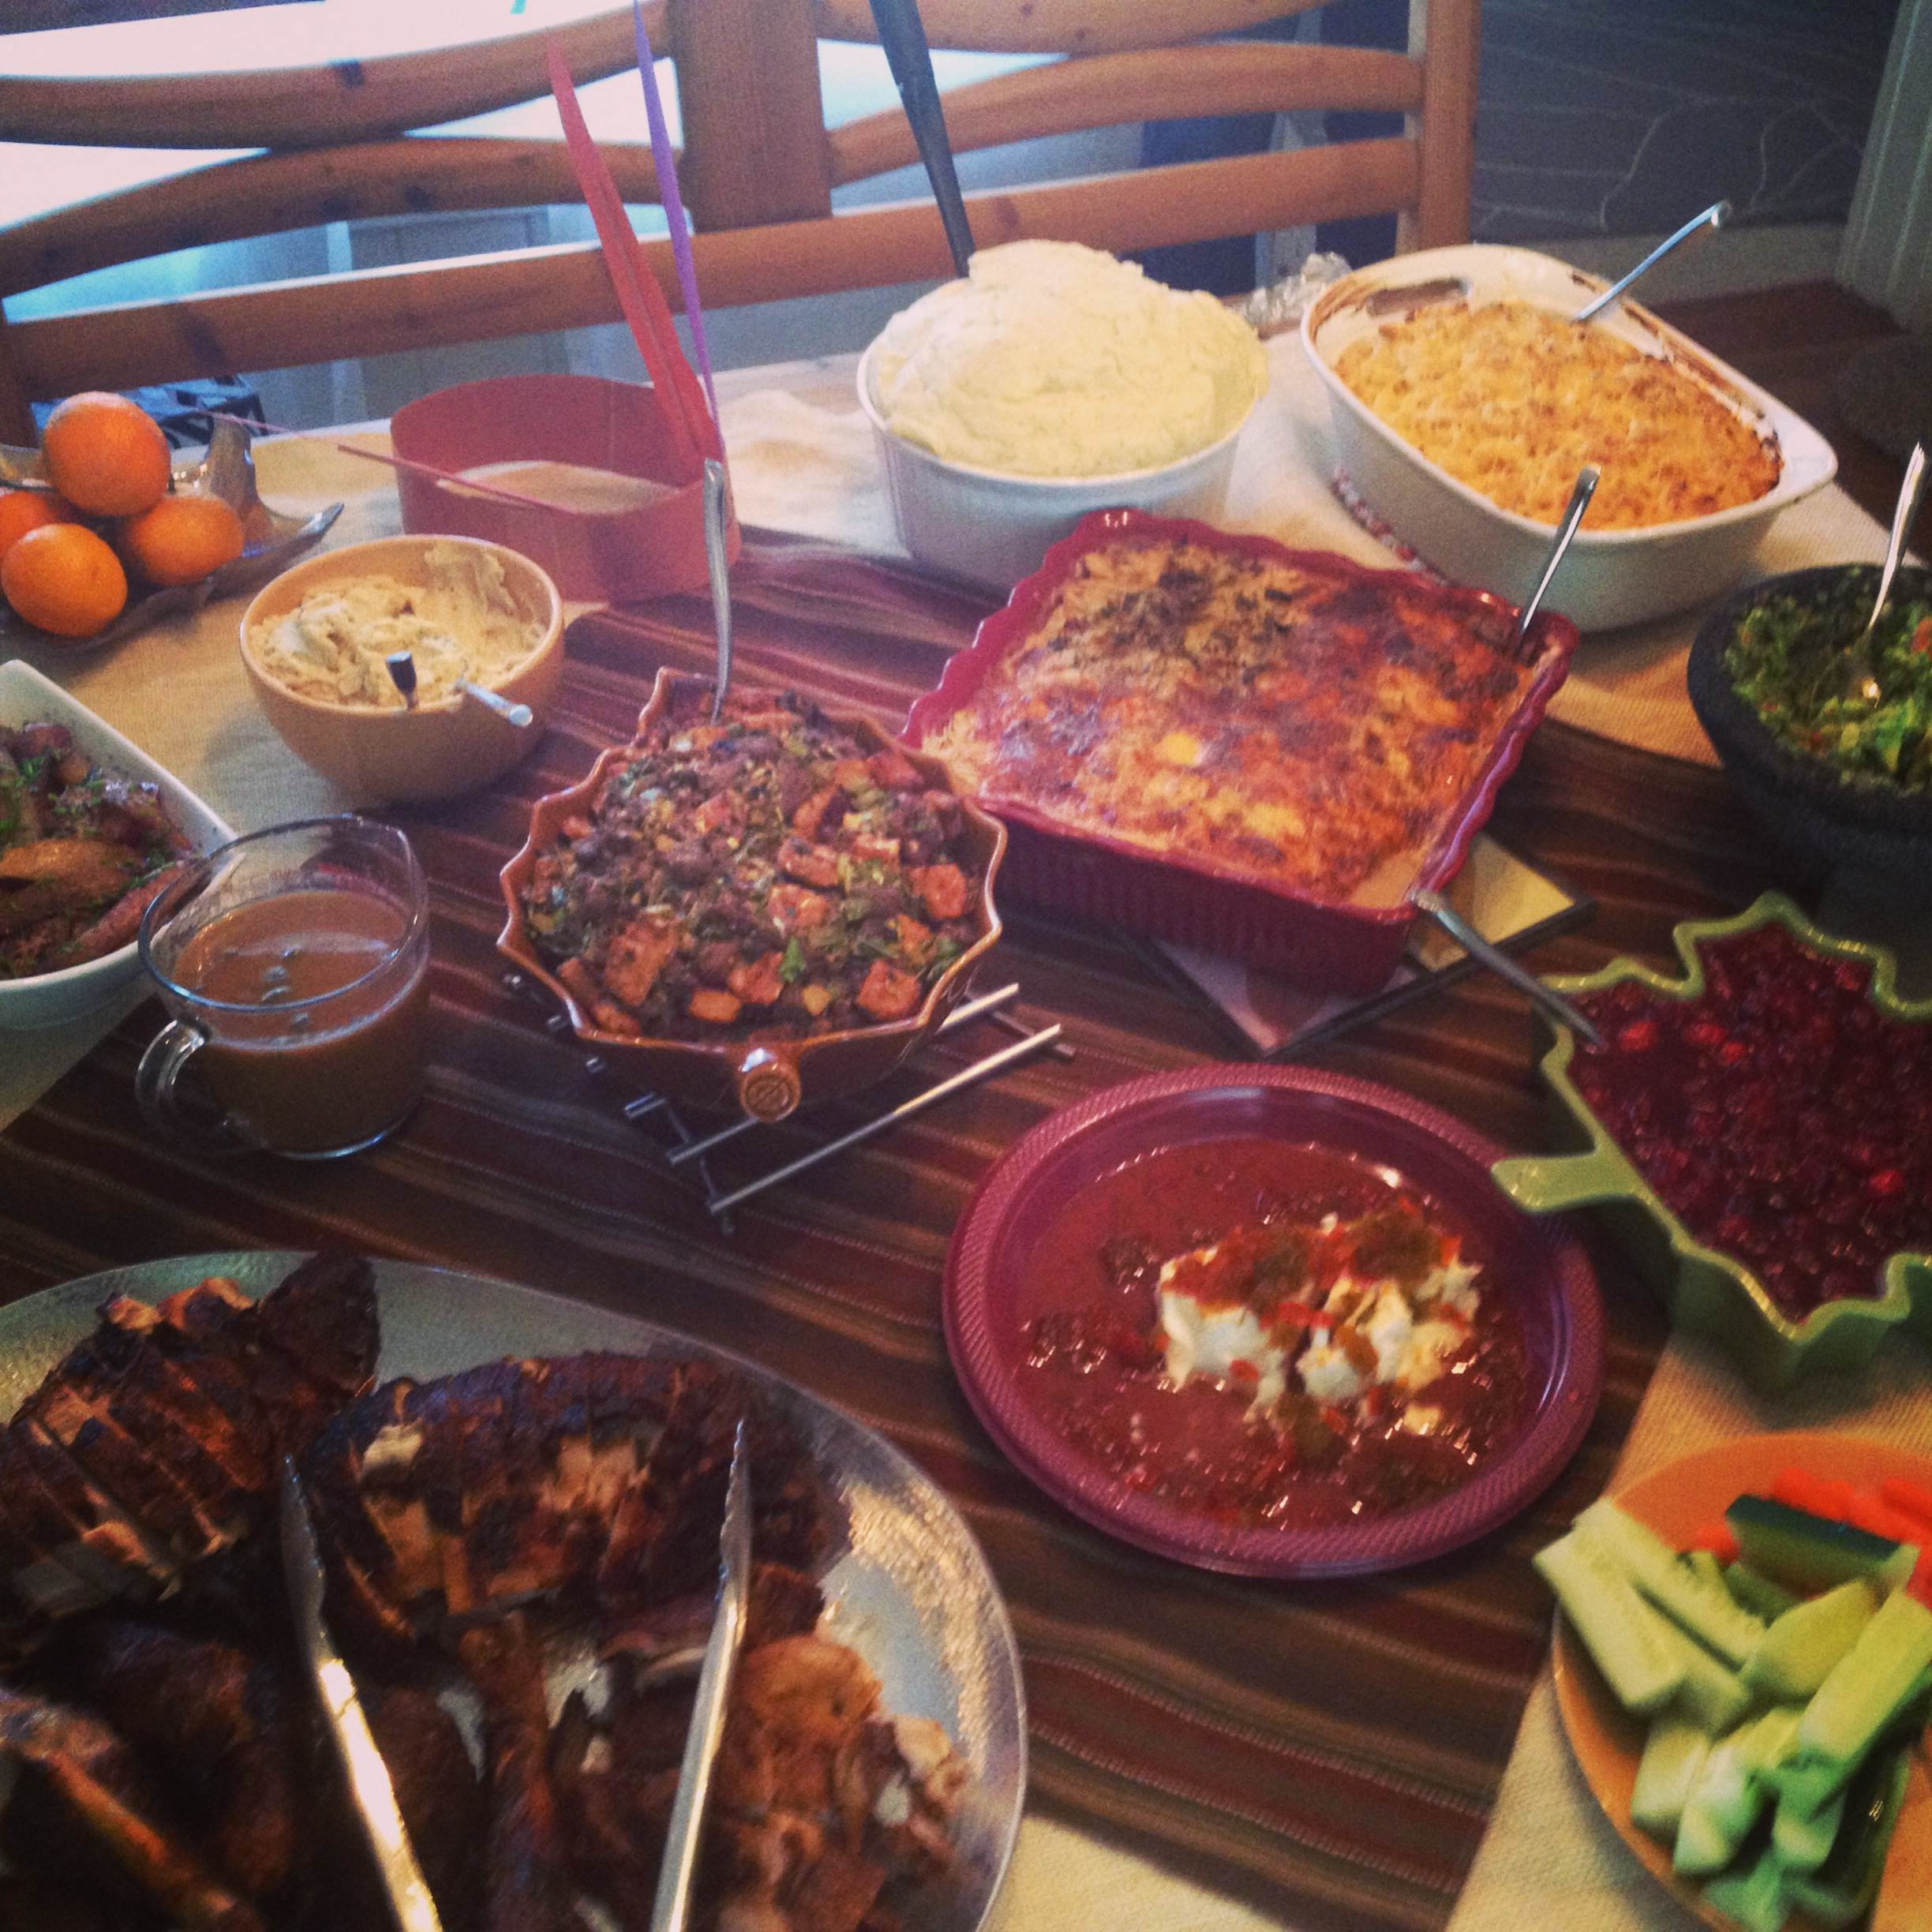 The Hickman Family Thanksgiving table